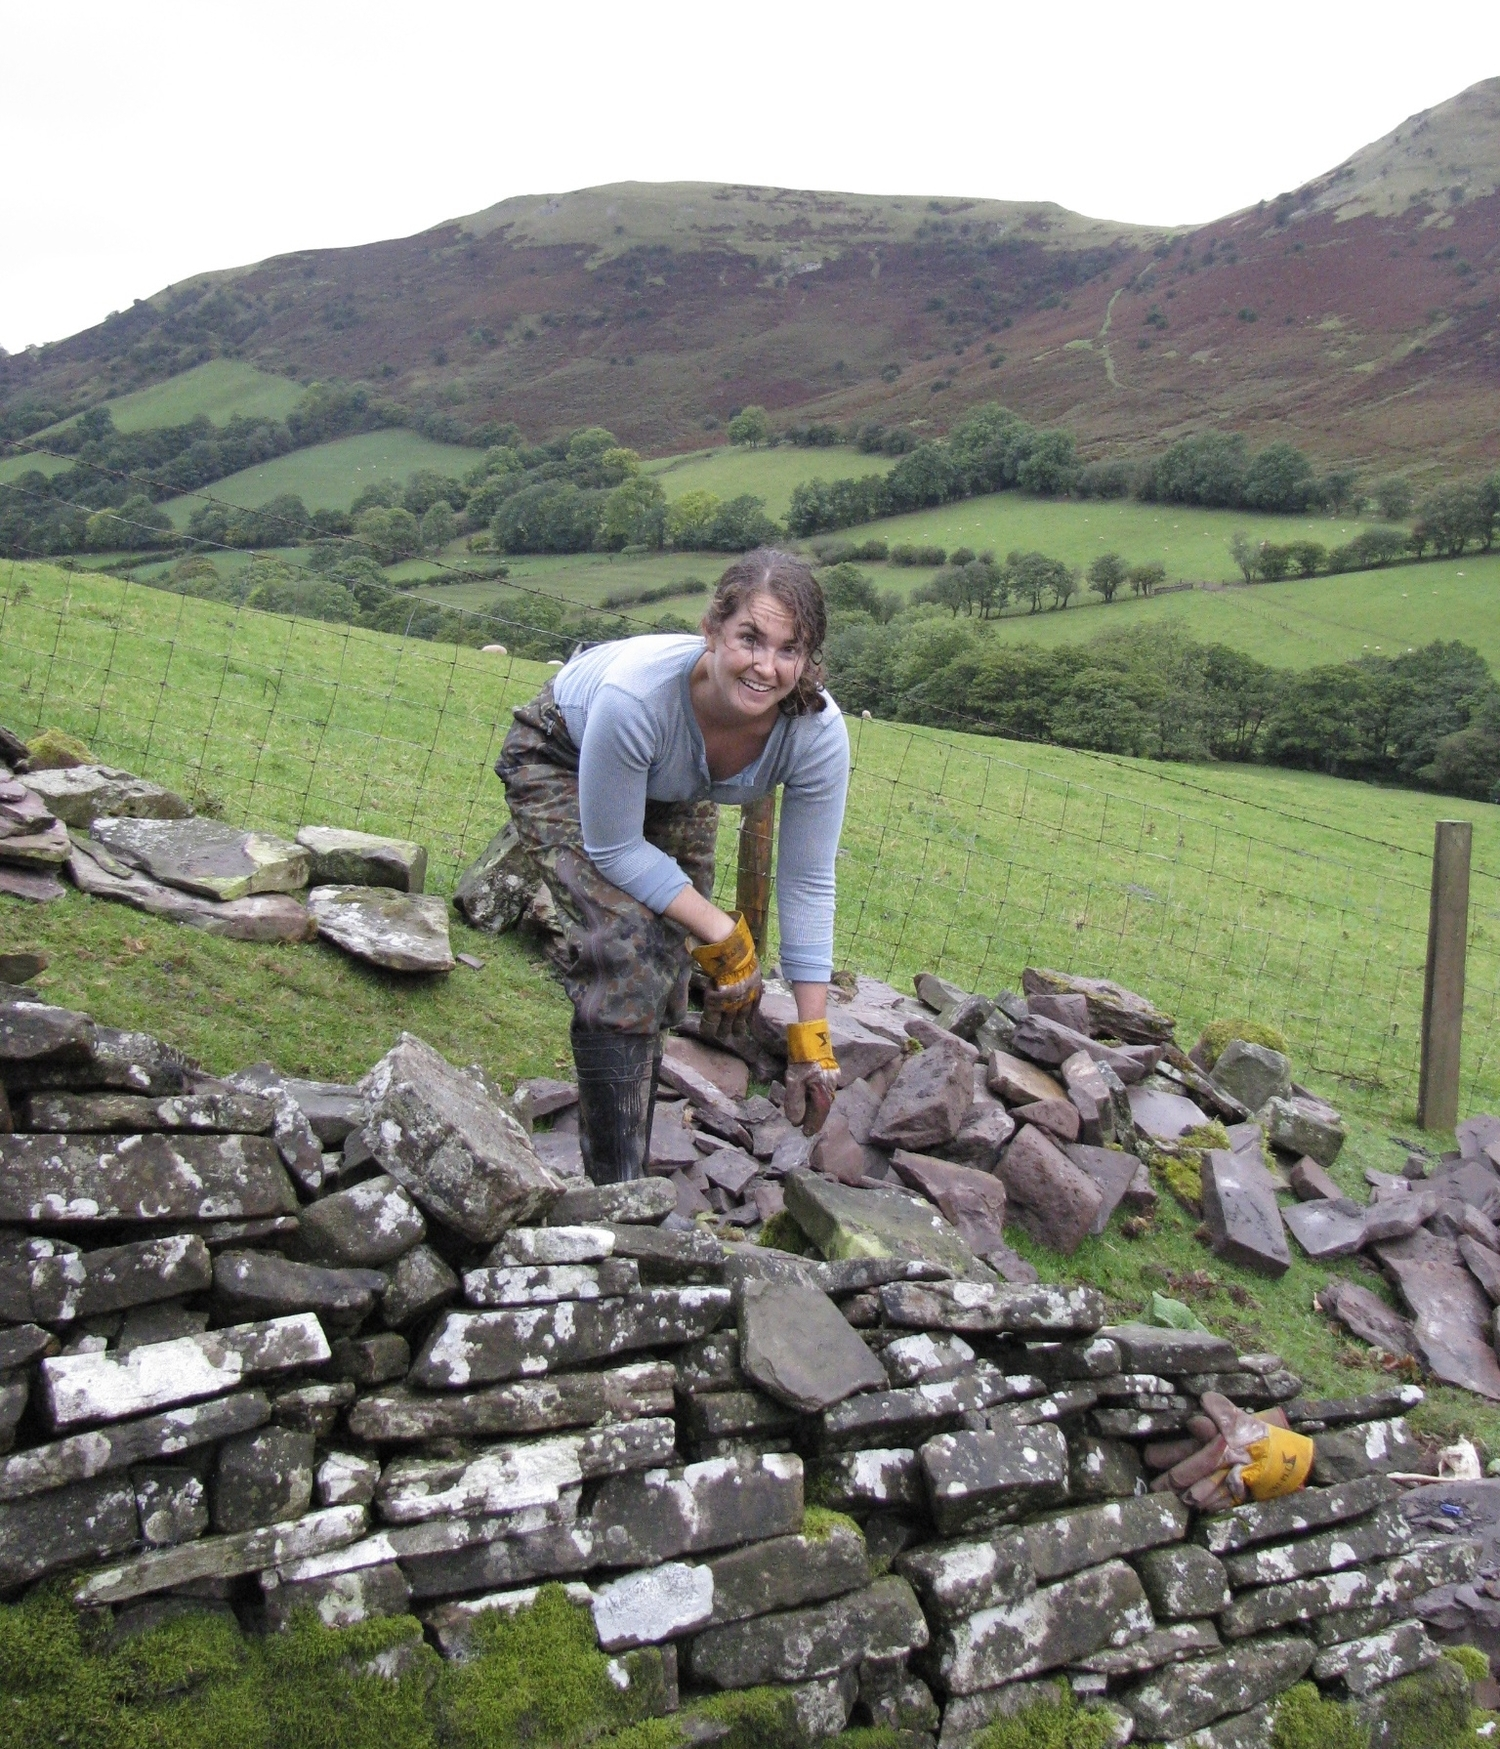 Stripping out an oldwall for restorationon a farm in the Rhiangoll, Wales, 2009